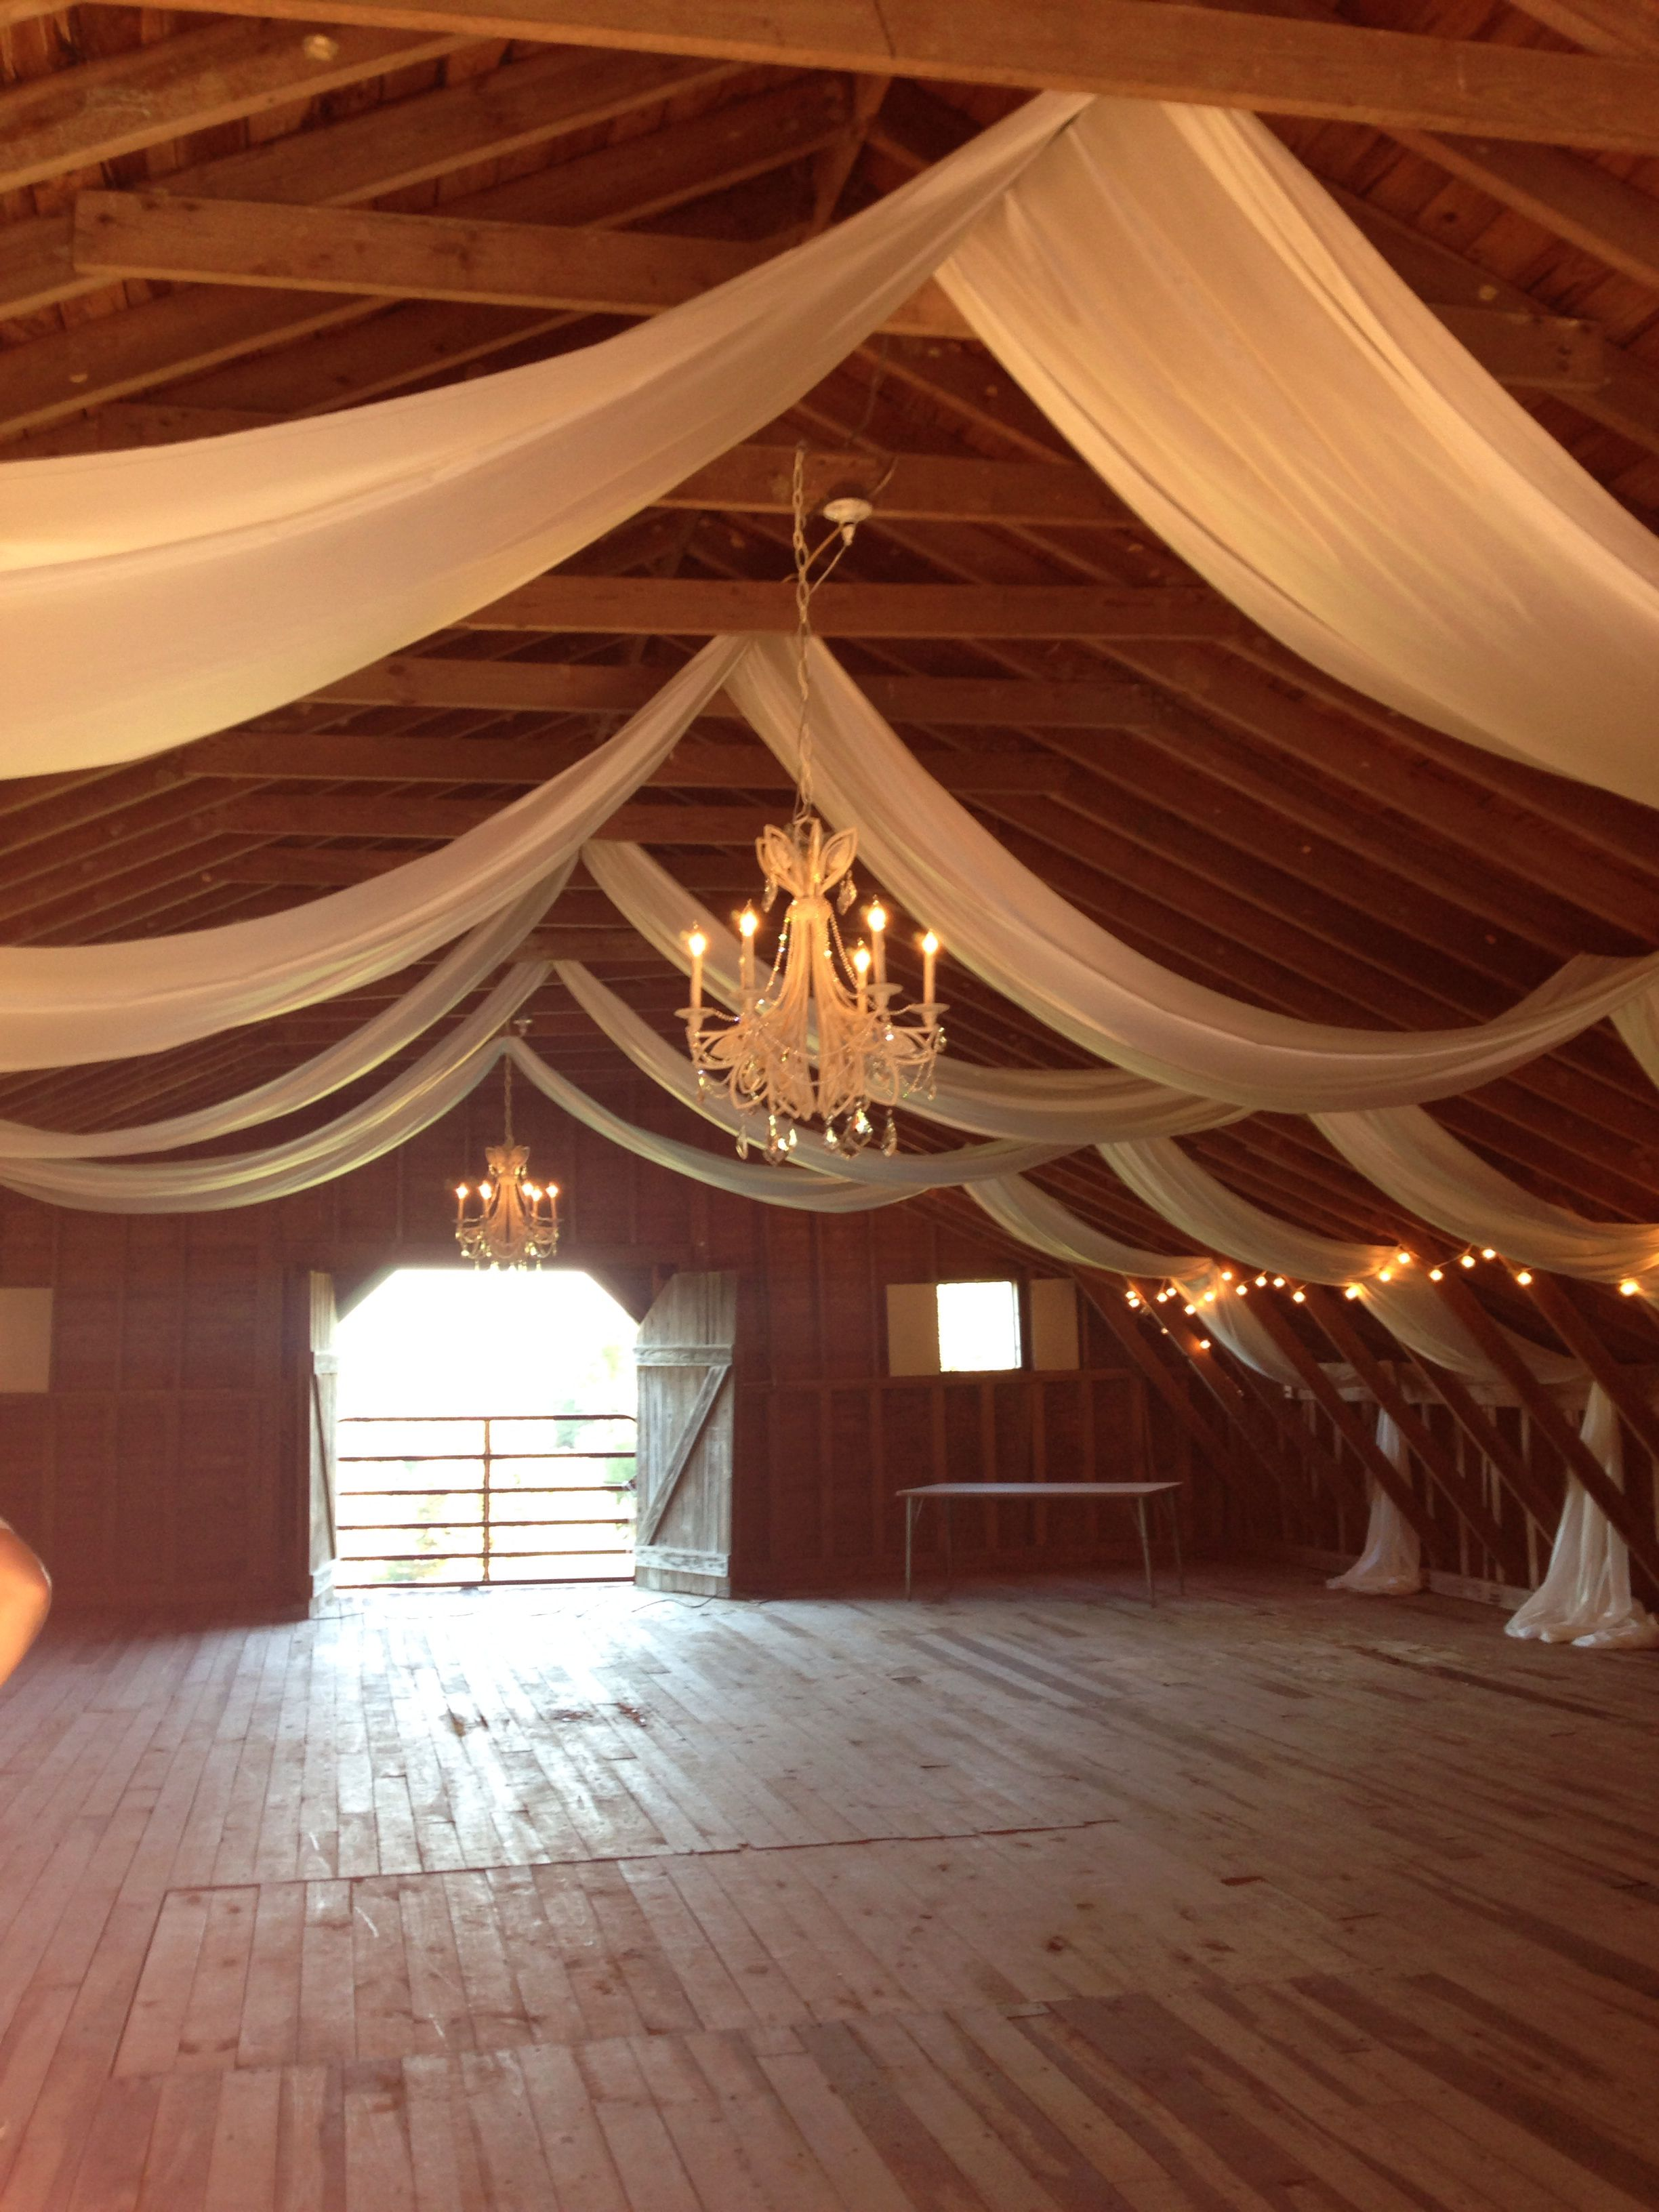 Fabric Draped Barn Loft With Chandeliers Used For Dance Floor With Bar Area Bistro Tables Rustic Wedding Wedding Decorations